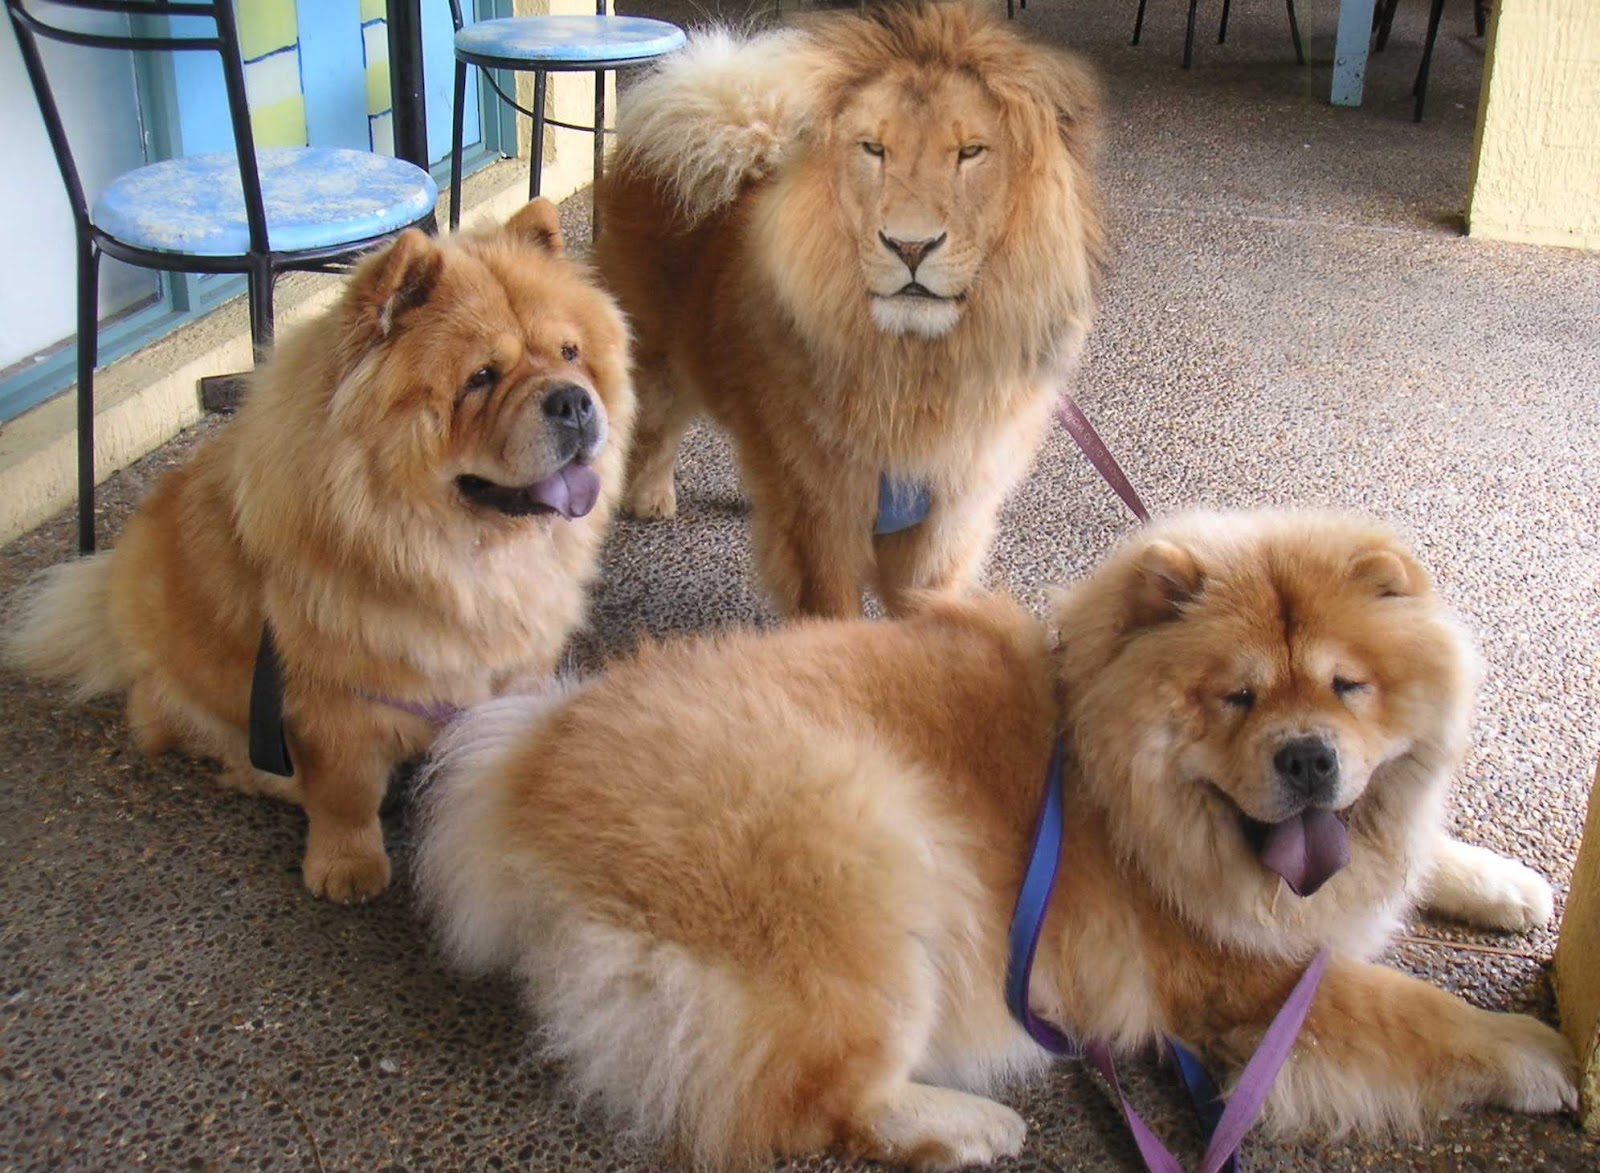 11 Dogs That Look Like Teddy Bears Pictures and Videos